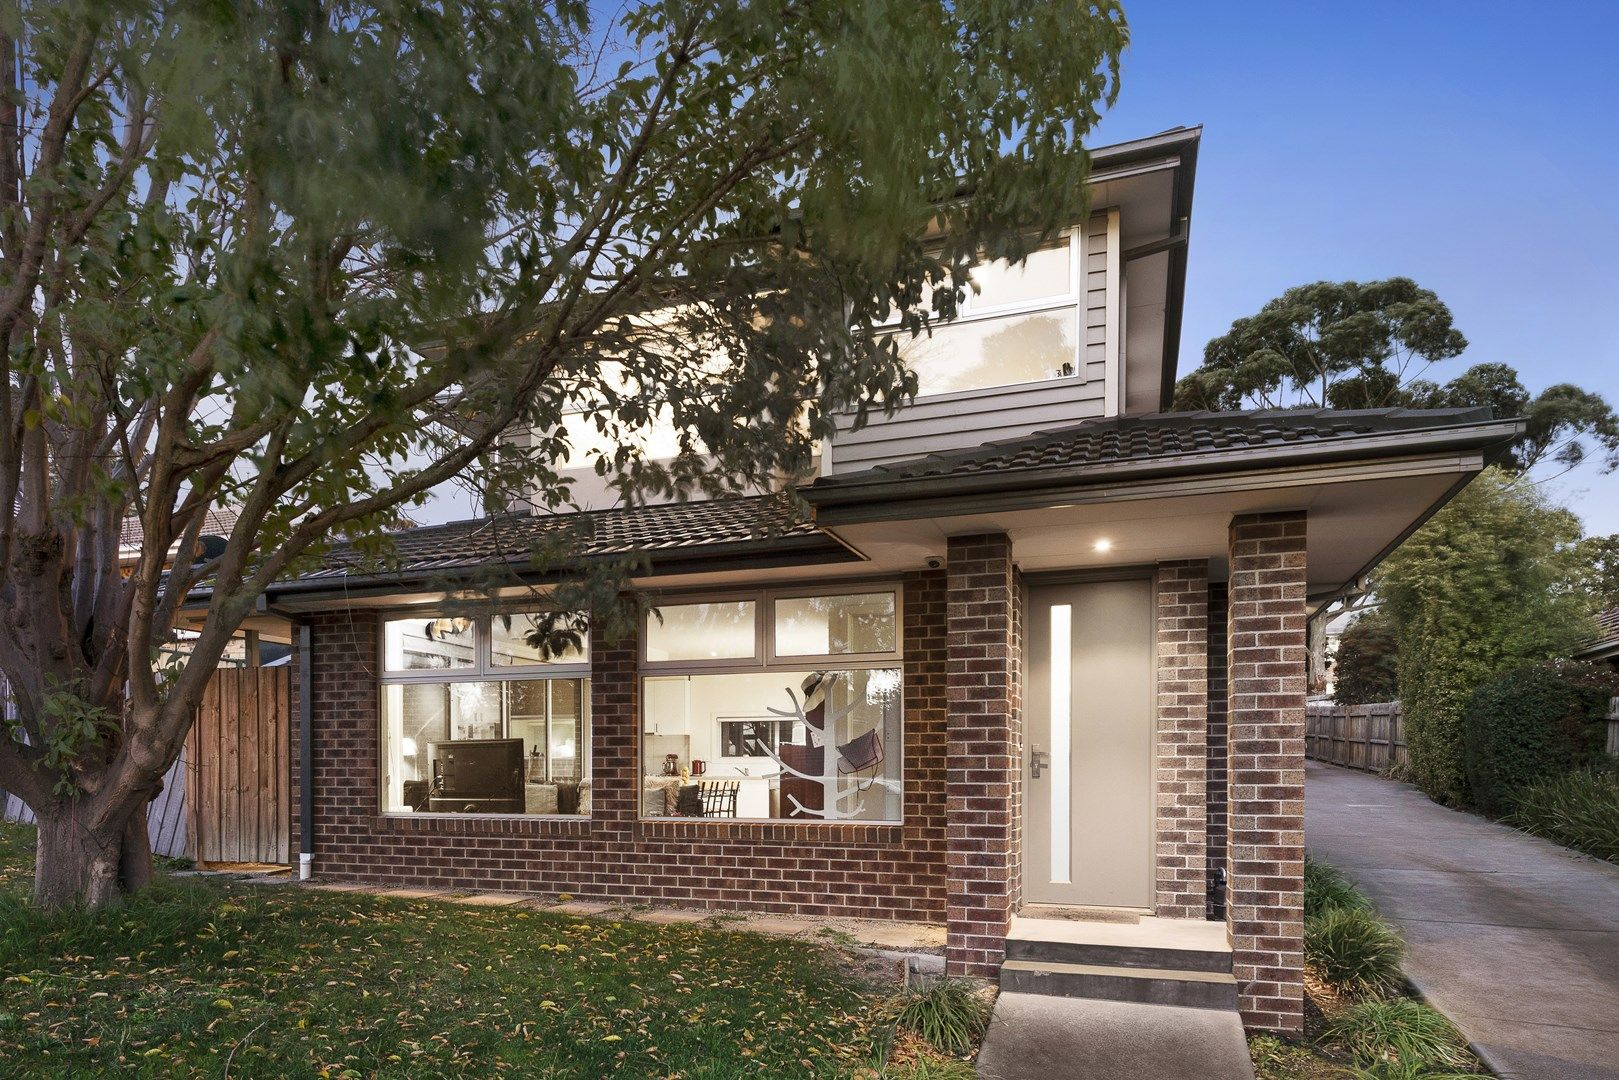 1/14 Hiscock Street, Chadstone VIC 3148, Image 0